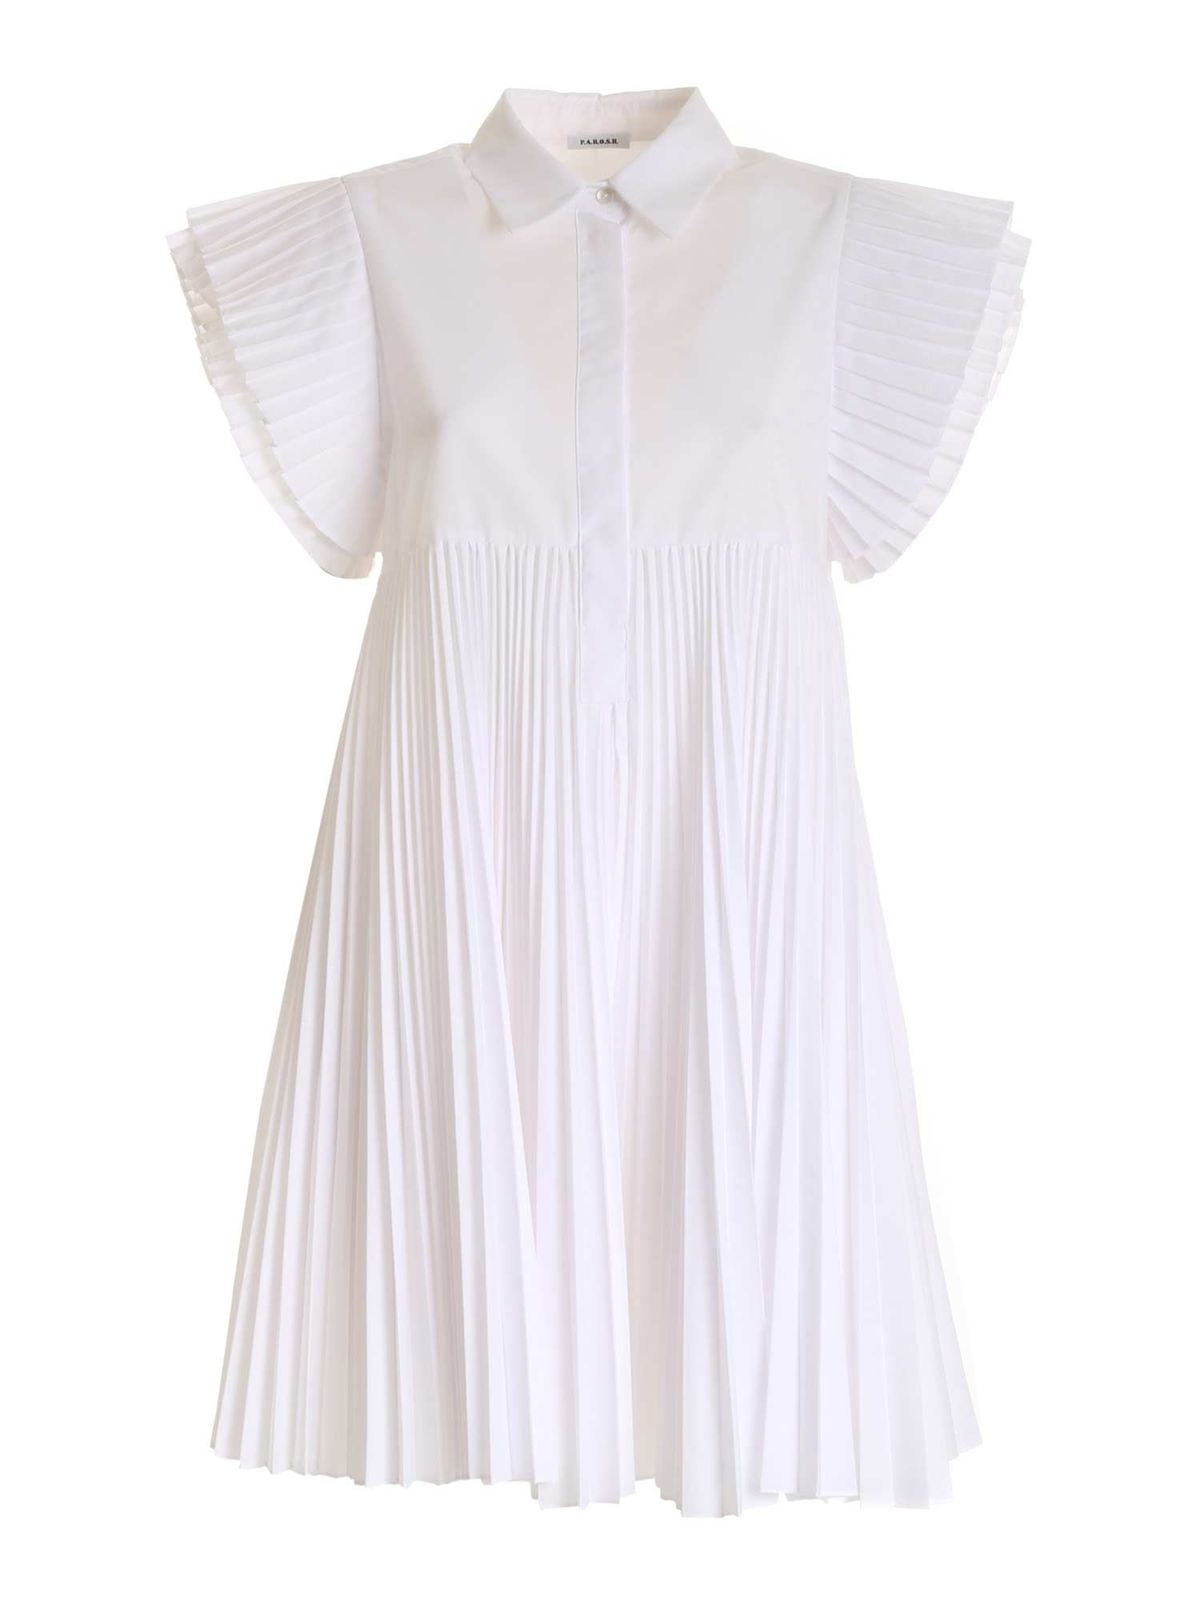 P.A.R.O.S.H. PLEATED DETAIL DRESS IN WHITE